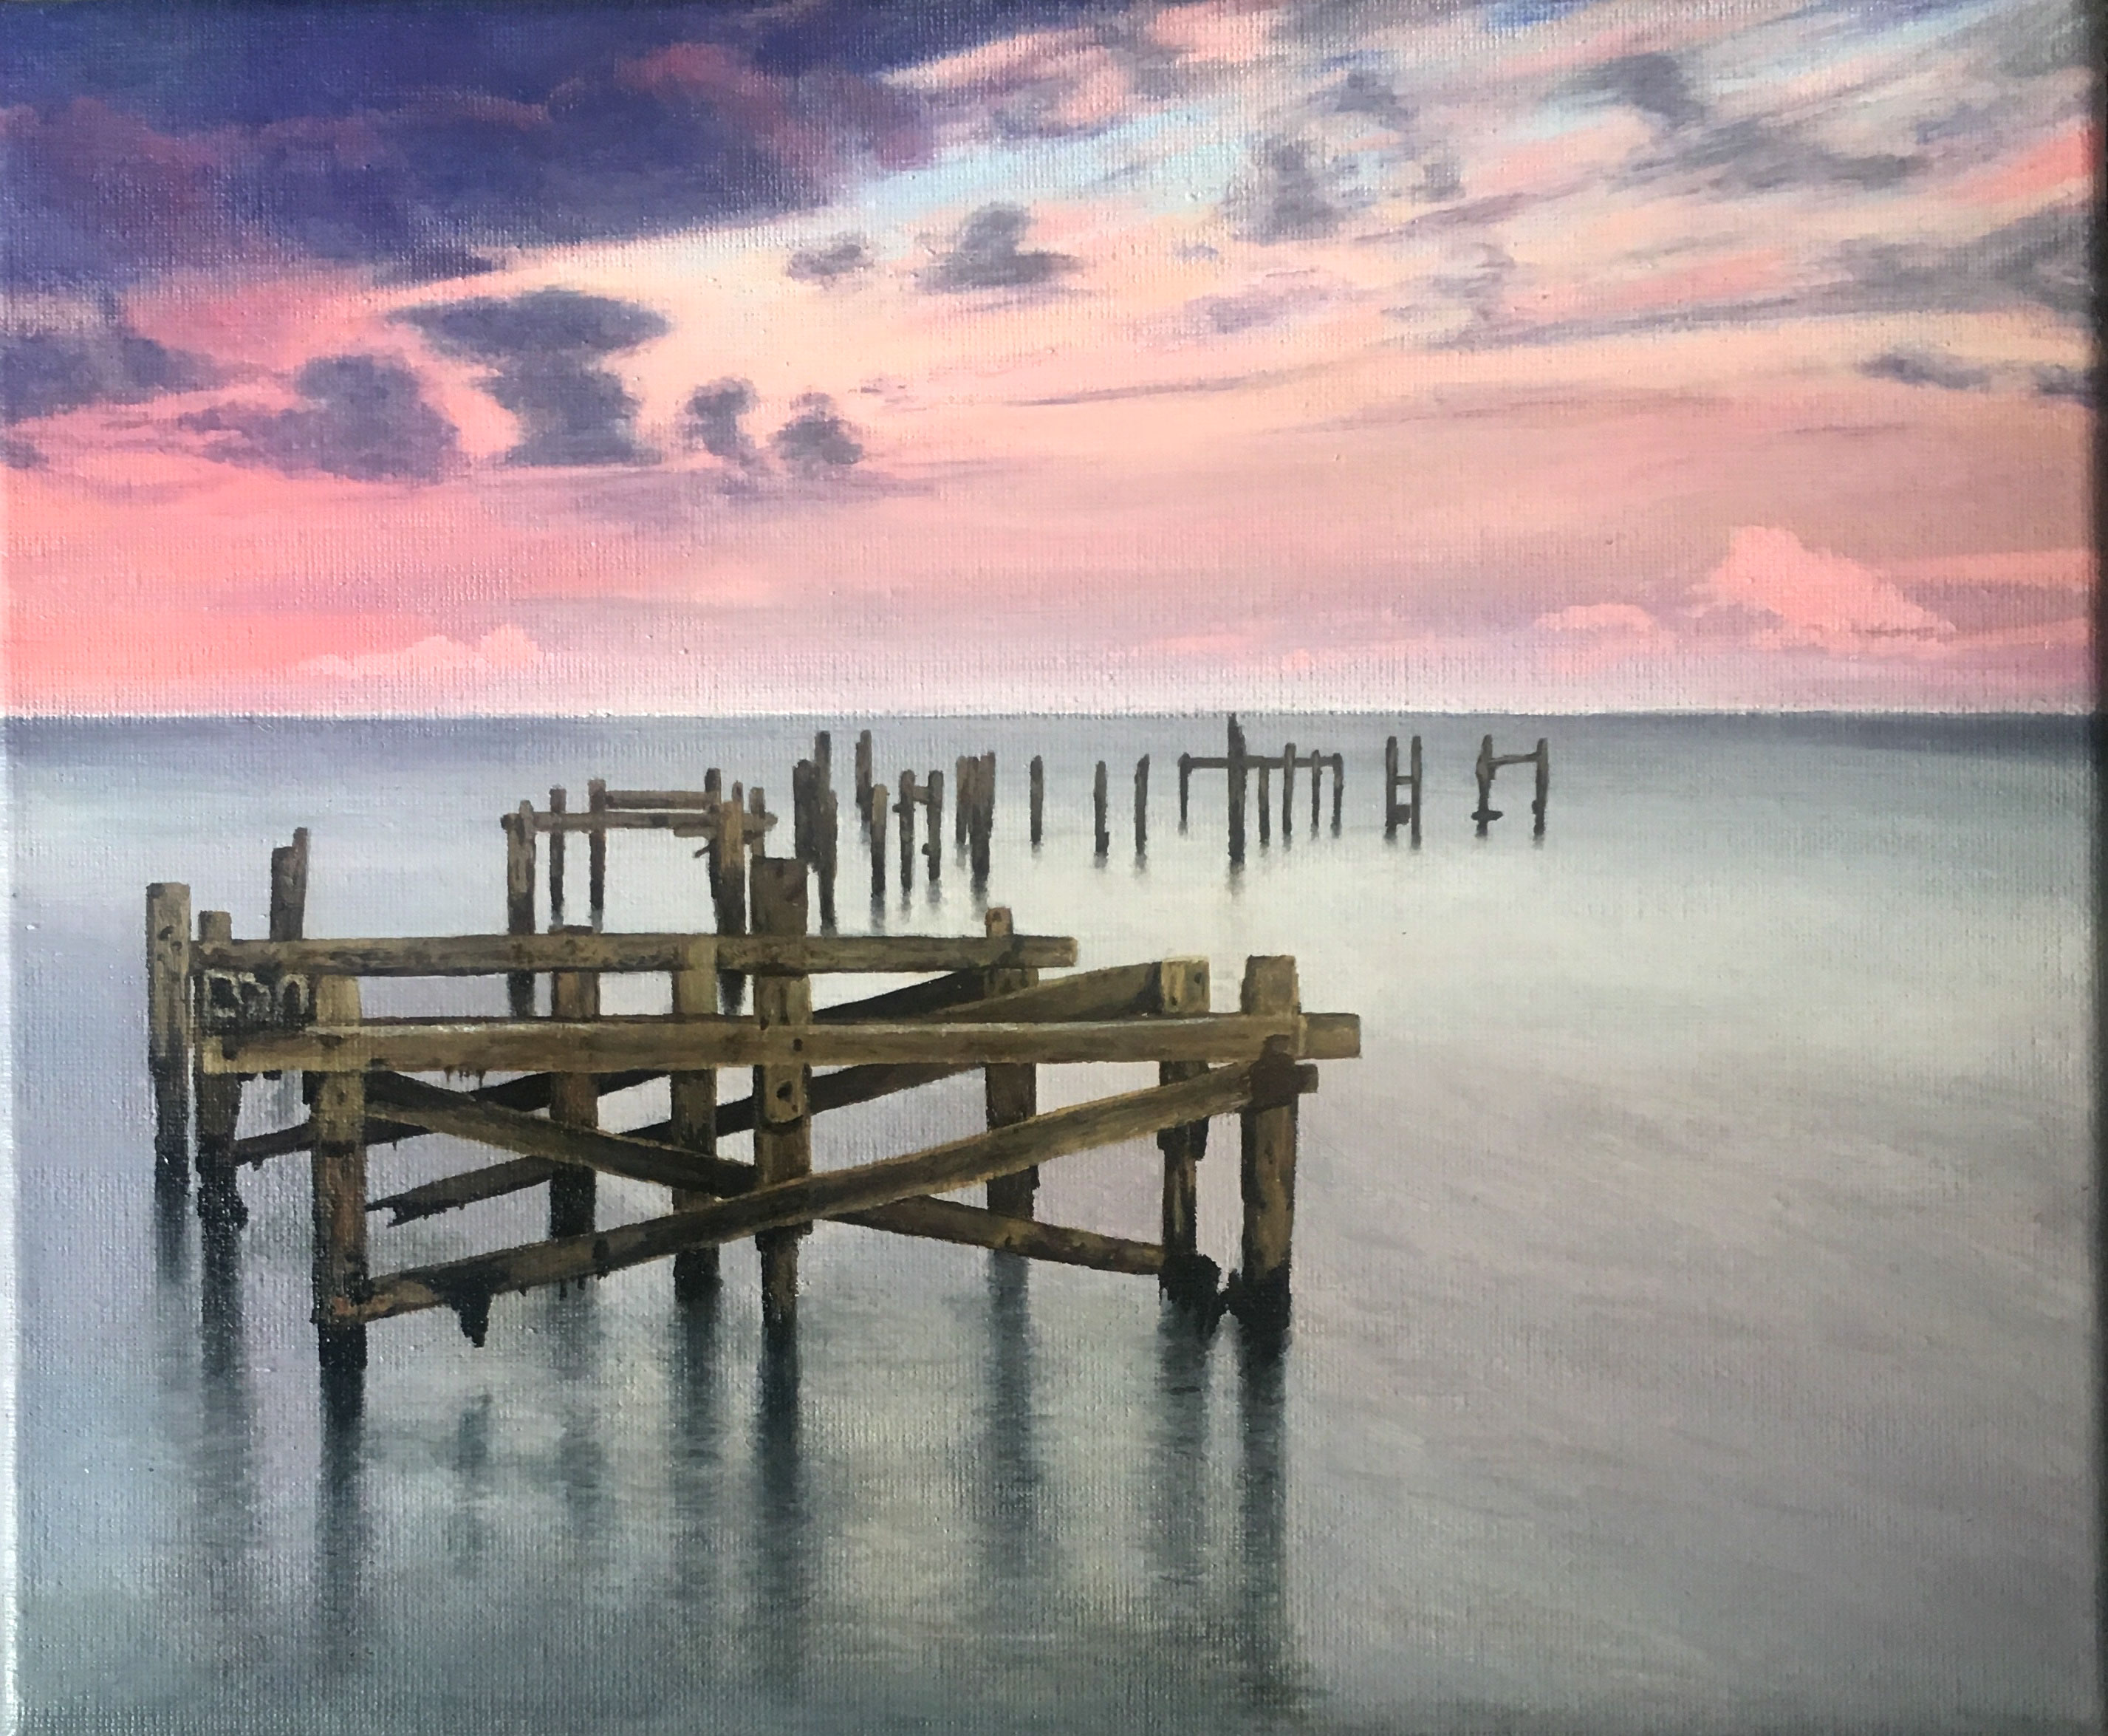 Acrylic painting of wrecked Swanage Old Pier with a colourful sky. Dorset, UK